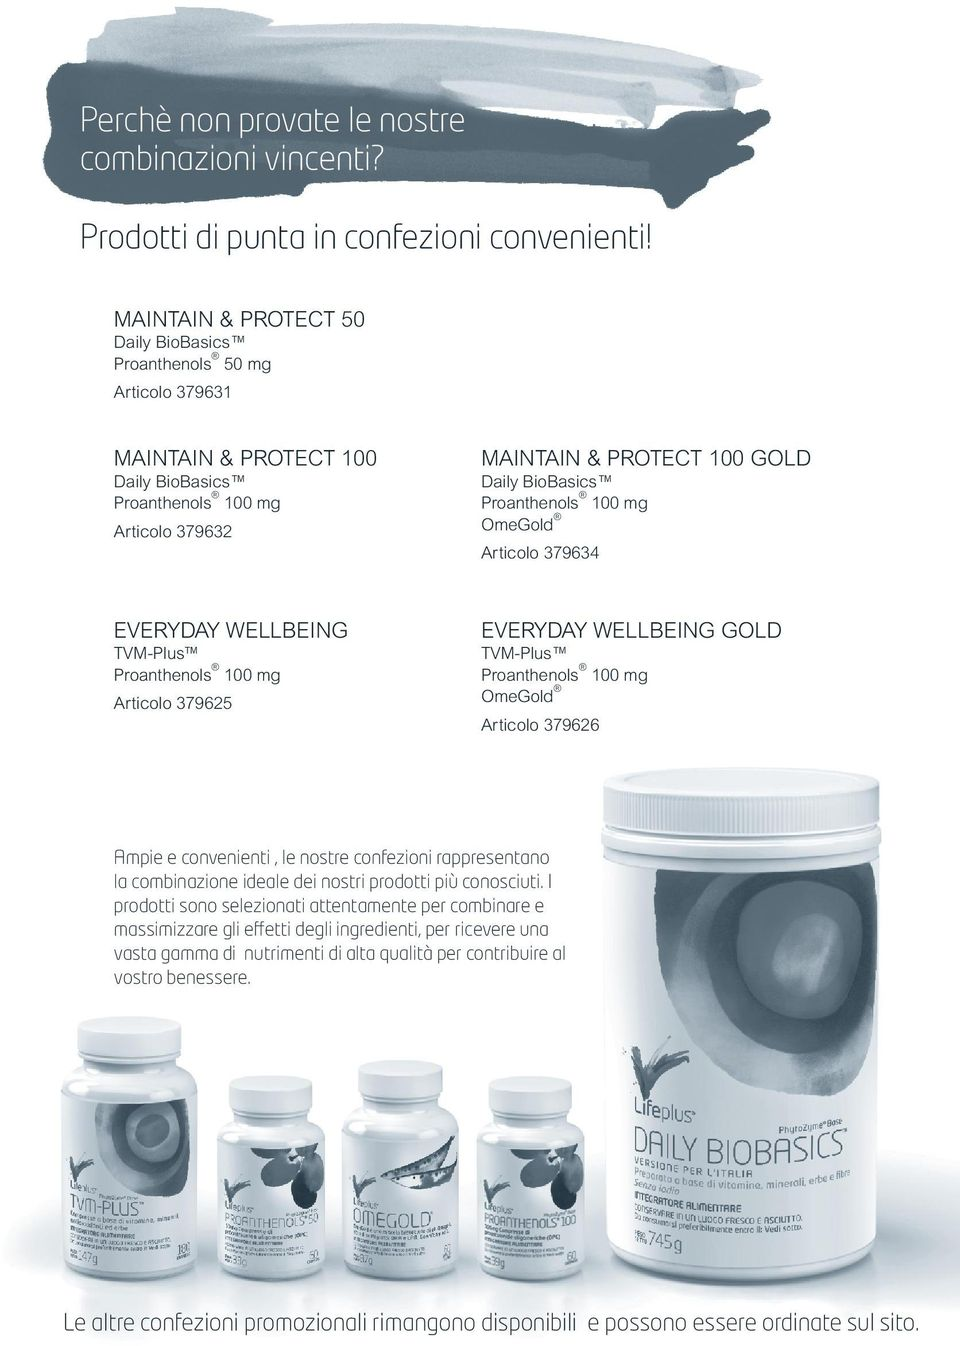 Proanthenols 100 mg OmeGold Articolo 379634 EVERYDAY WELLBEING TVM-Plus Proanthenols 100 mg Articolo 379625 EVERYDAY WELLBEING GOLD TVM-Plus Proanthenols 100 mg OmeGold Articolo 379626 Ampie e